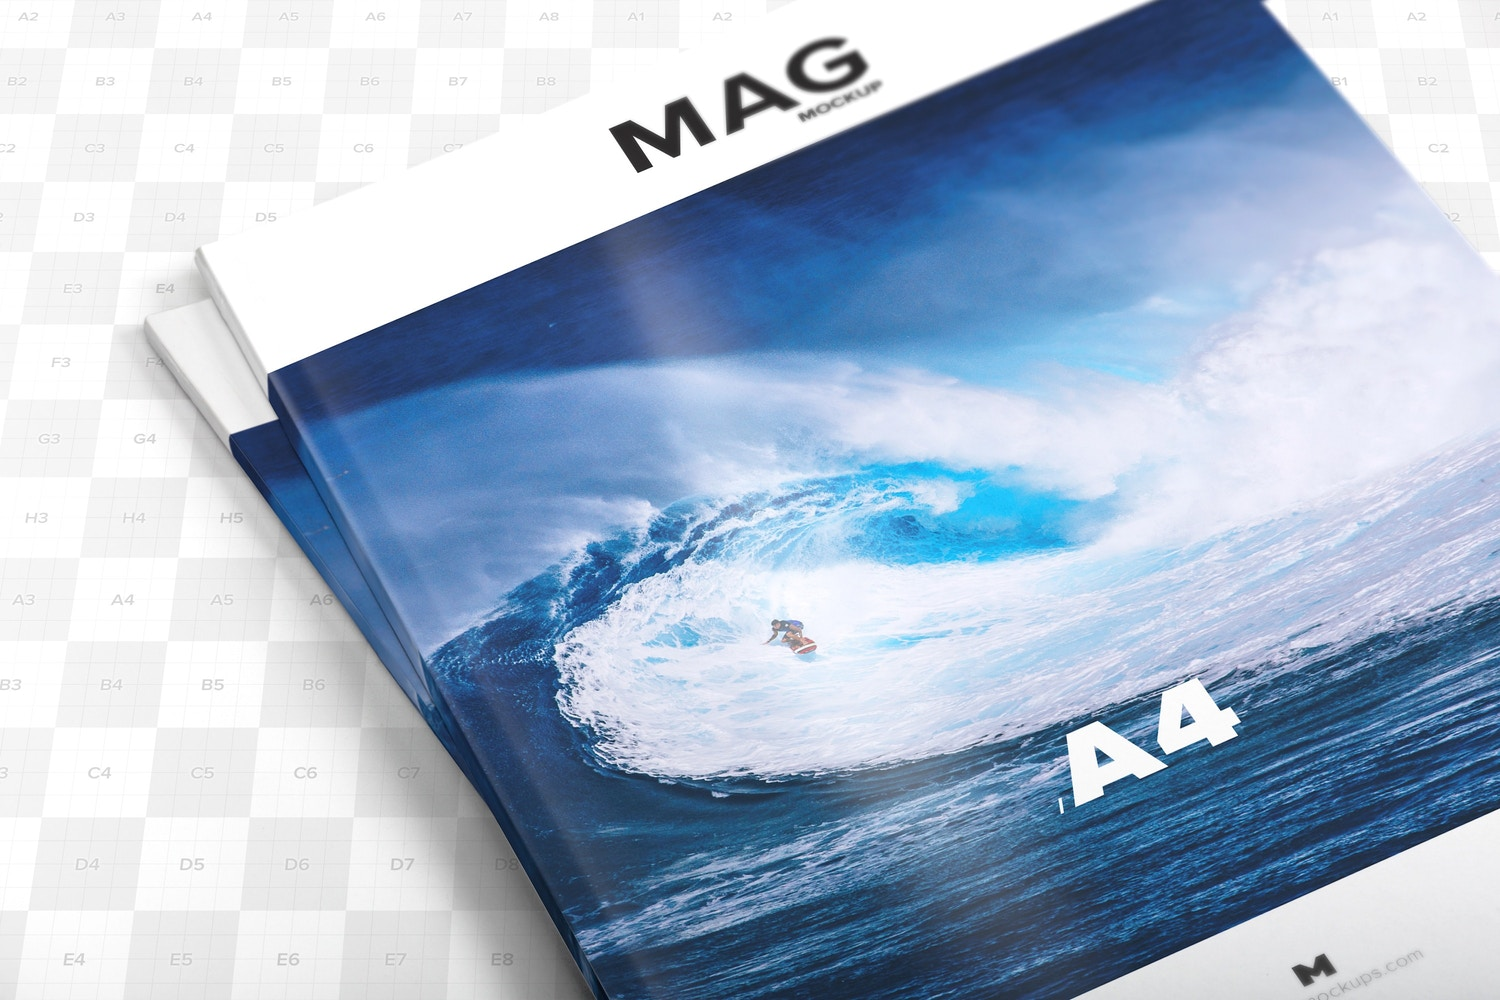 A4 Magazine Closed Mockup 01 - Custom Background